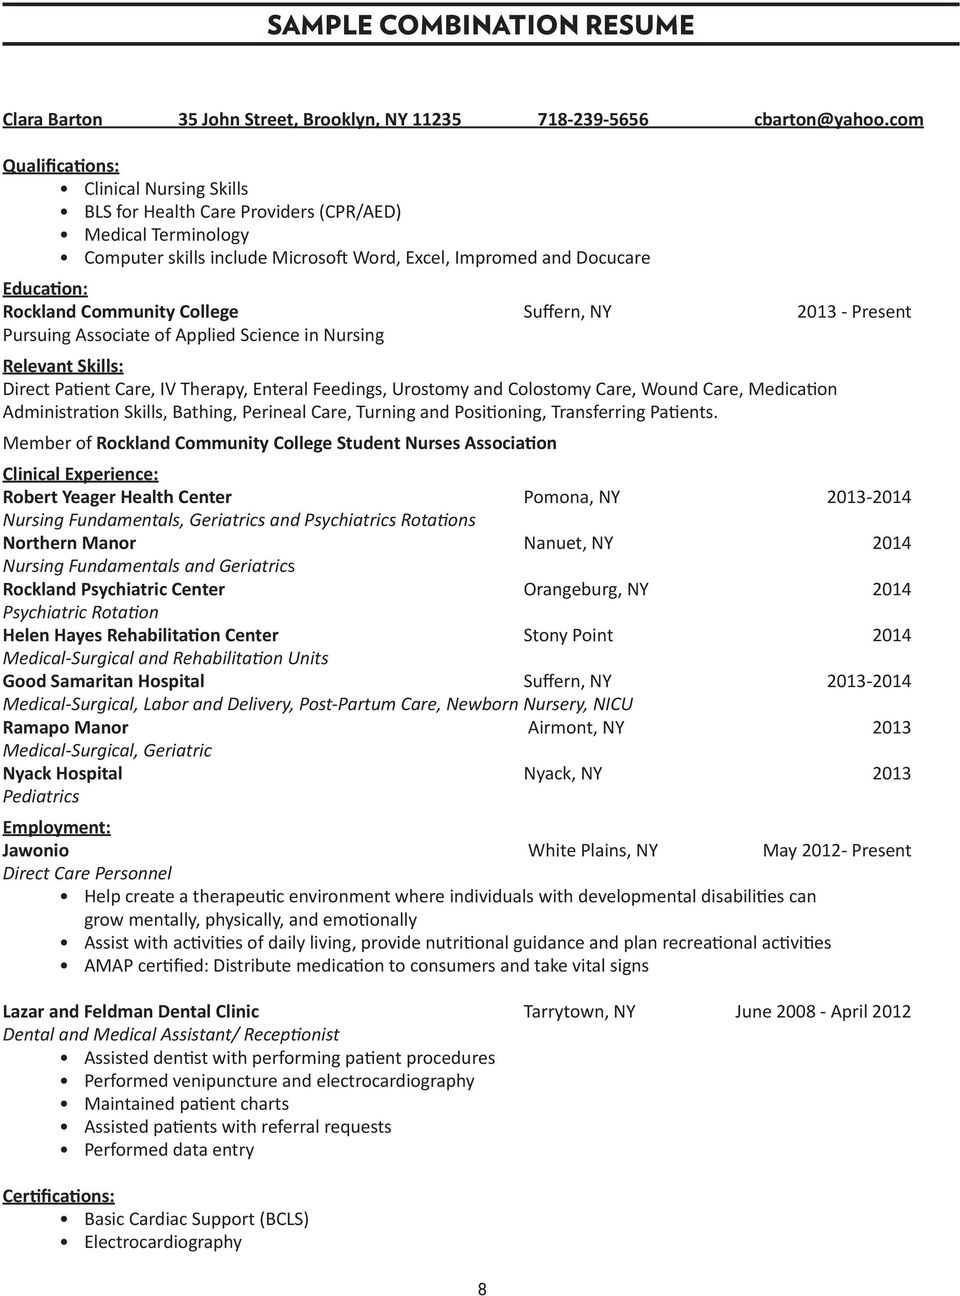 career services resume writing guide pdf community college suffern ny 2013 present pursuing associate of applied science in nursing relevant